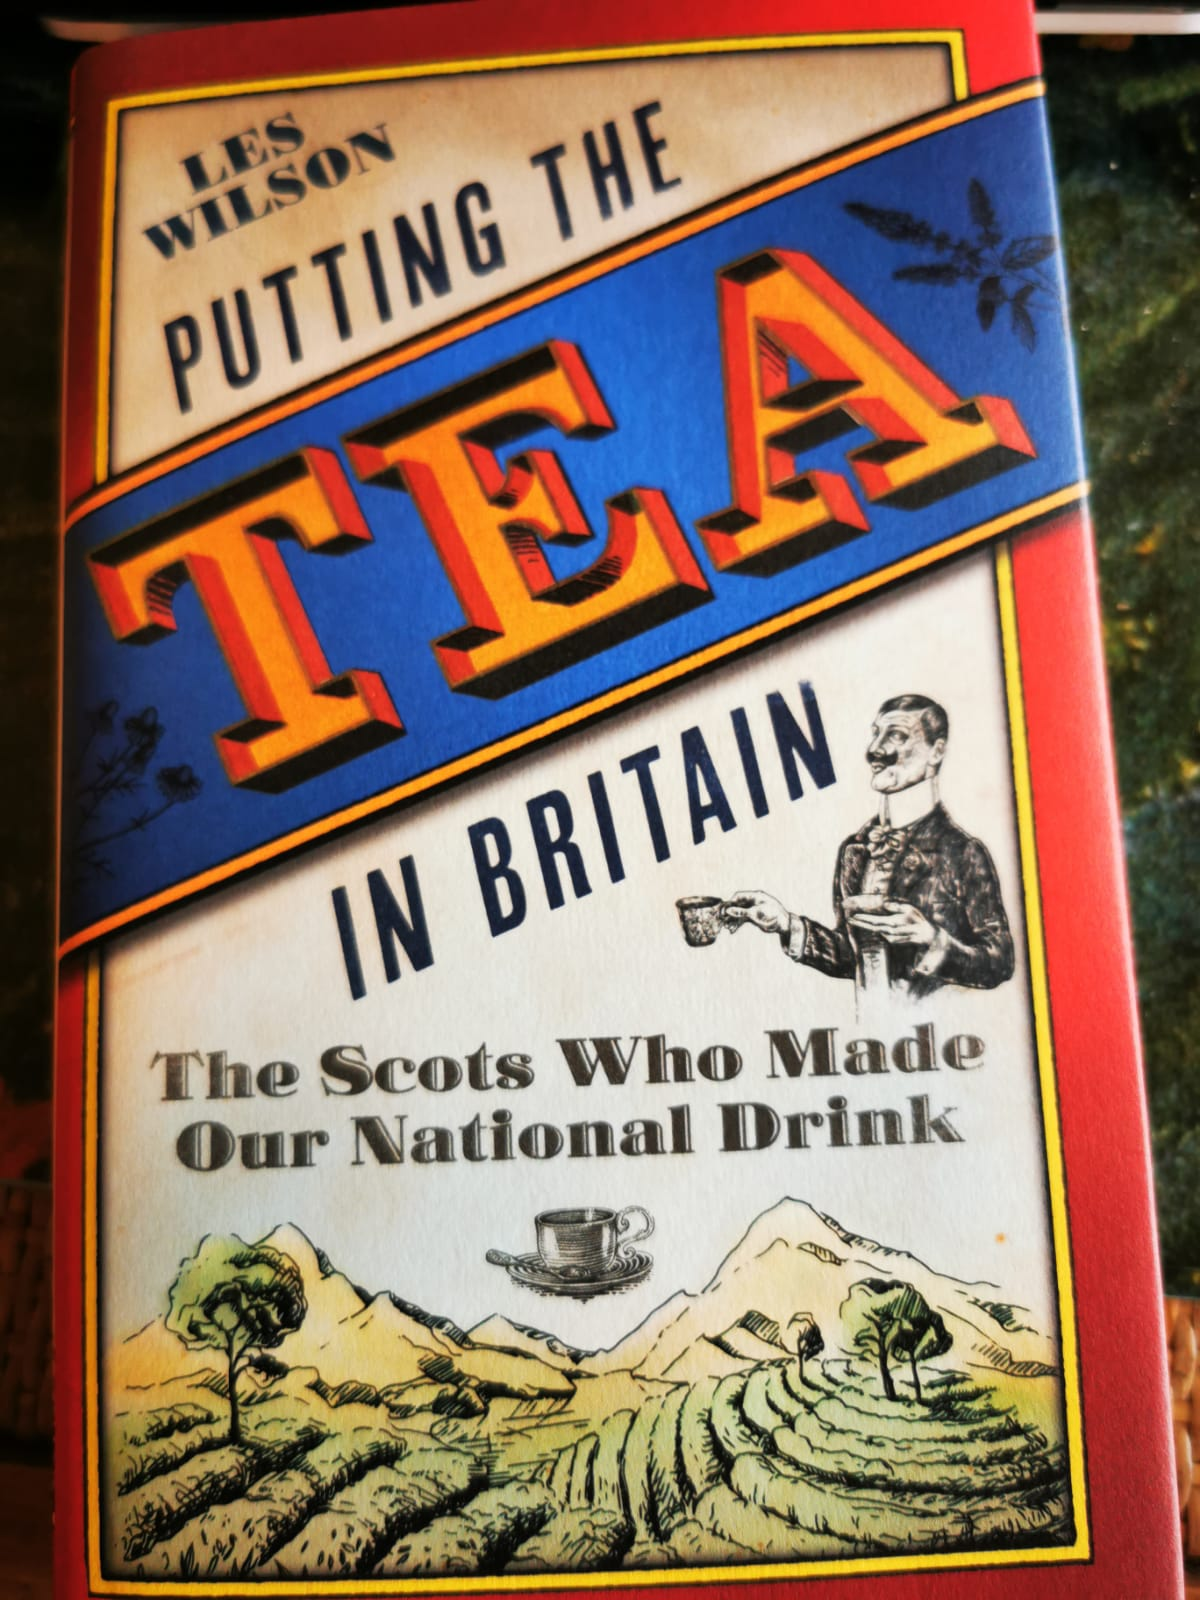 Putting the tea in Britain book review